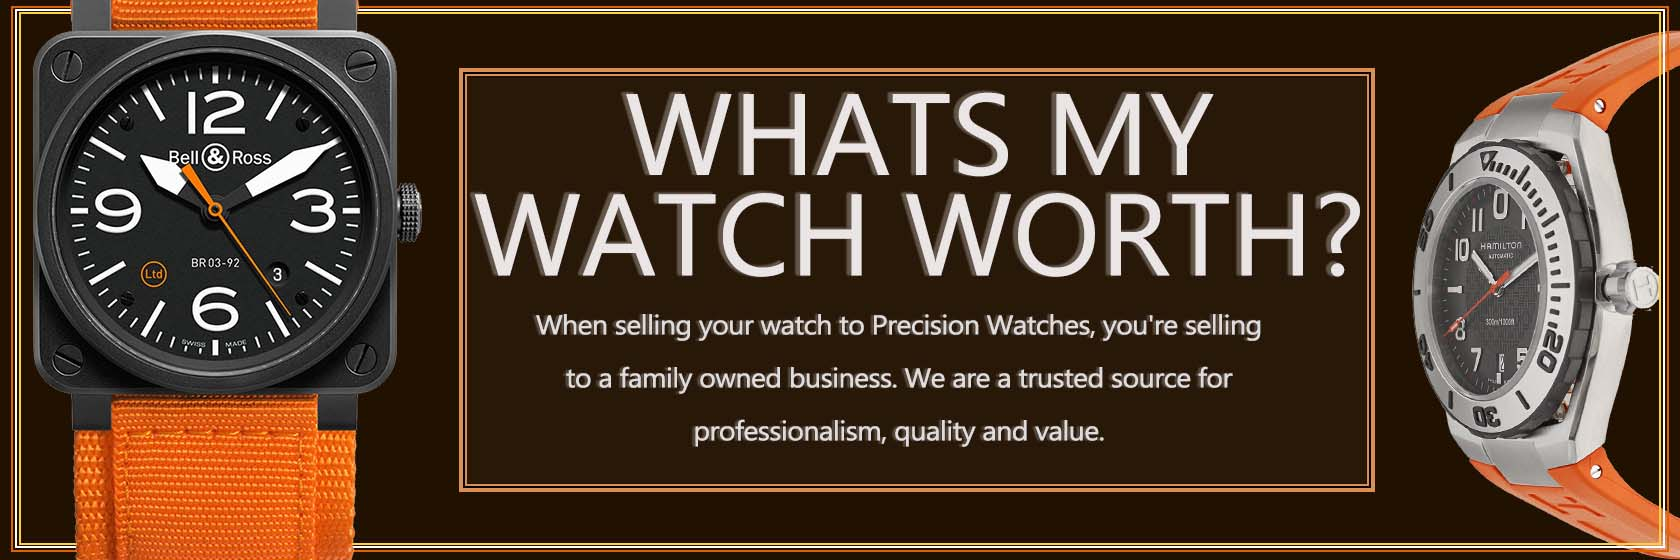 Precision-watches-sell-my-watch-rolex-breitling-omega